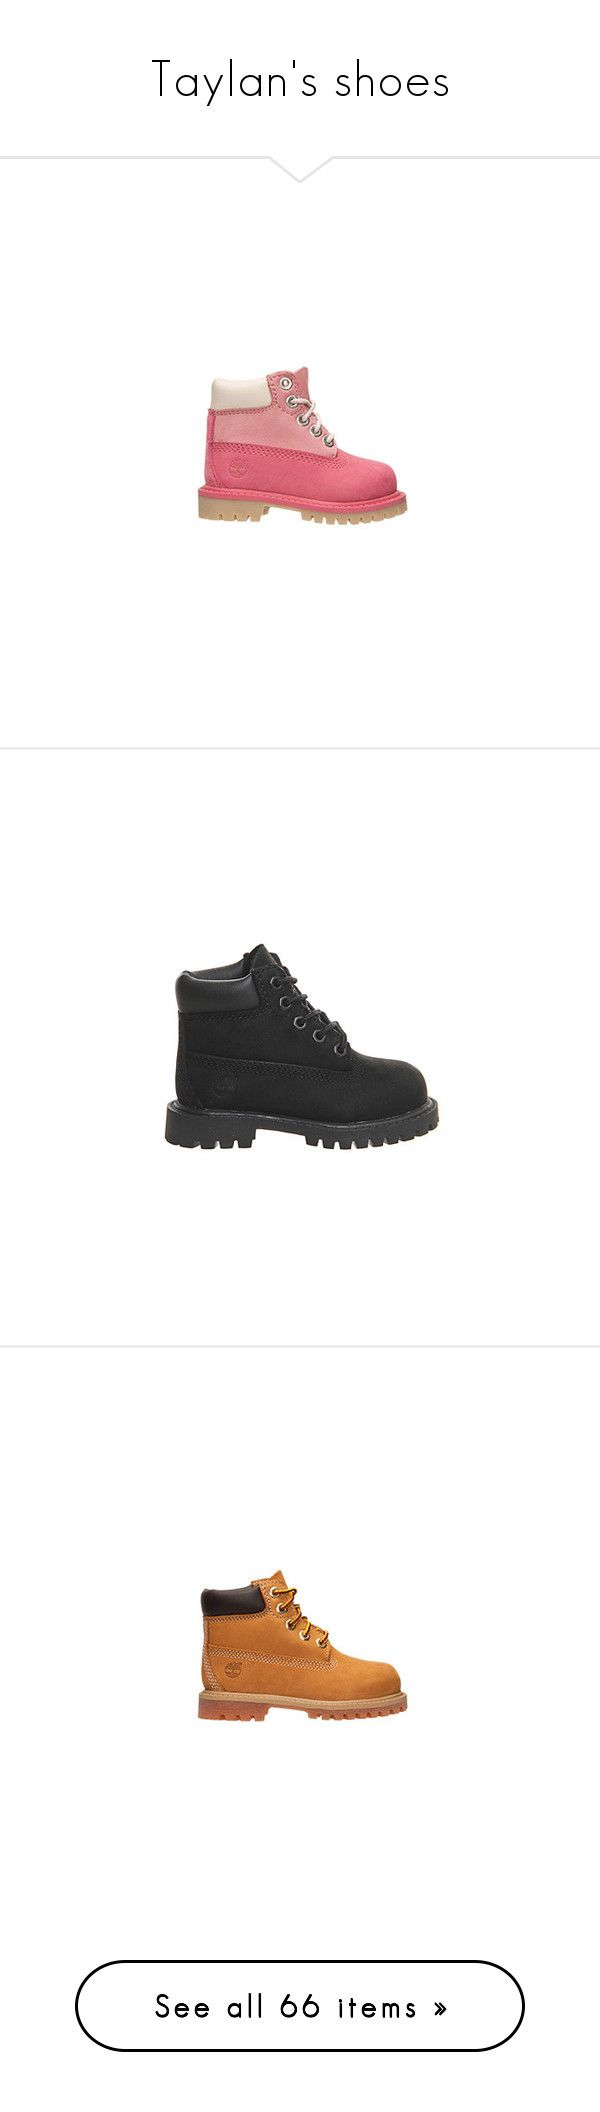 """""""Taylan's shoes"""" by rihannabaeee ❤ liked on Polyvore featuring shoes, loafers, baby shoes, baby boy, new navy, moccasin style shoes, mocasin shoes, mocassin shoes, ugg shoes and navy shoes"""